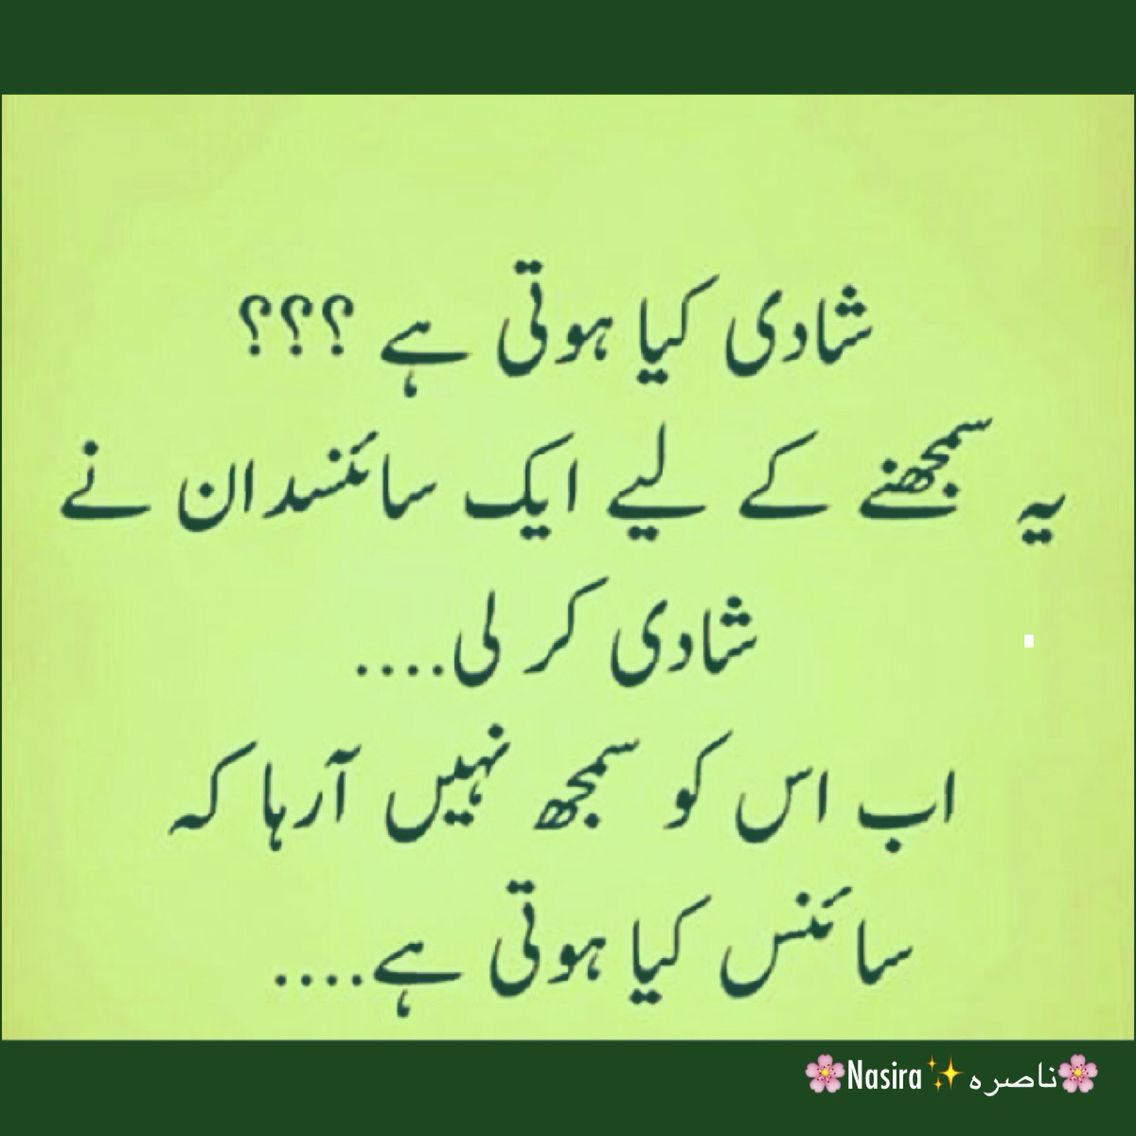 Very Short Funny Quotes About Life Urdu: Pin By Nasira Ahmad On اردو Quotes